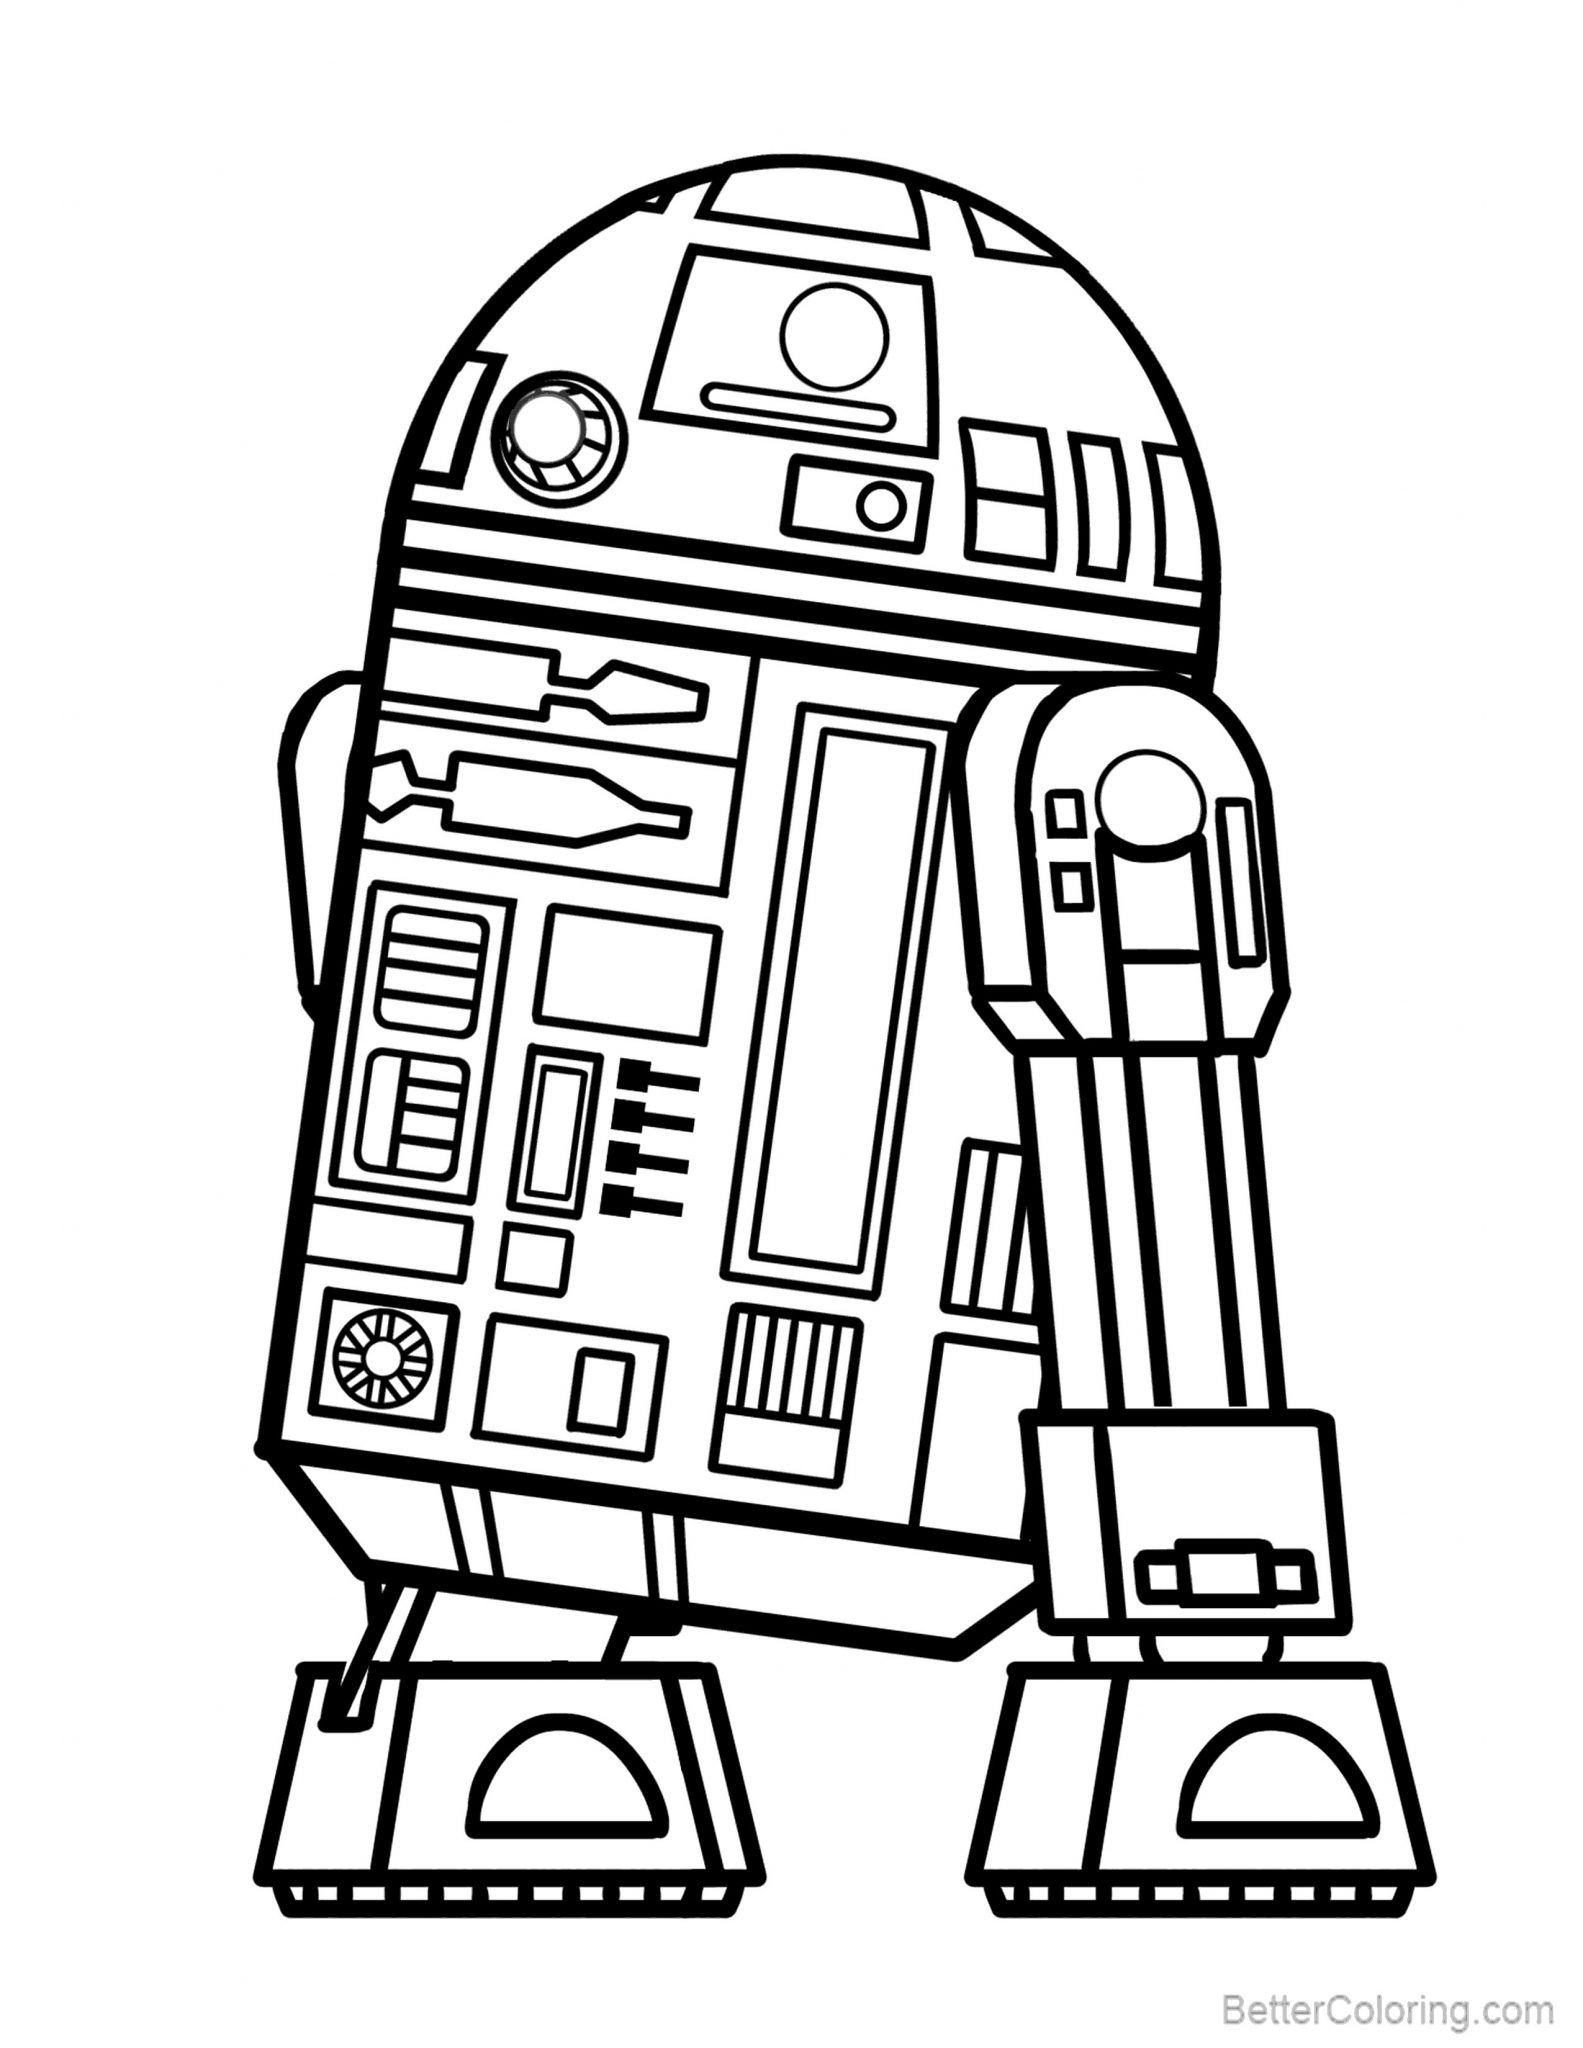 r2d2 printable star wars inspired r2 d2 line art craft mama likes this r2d2 printable